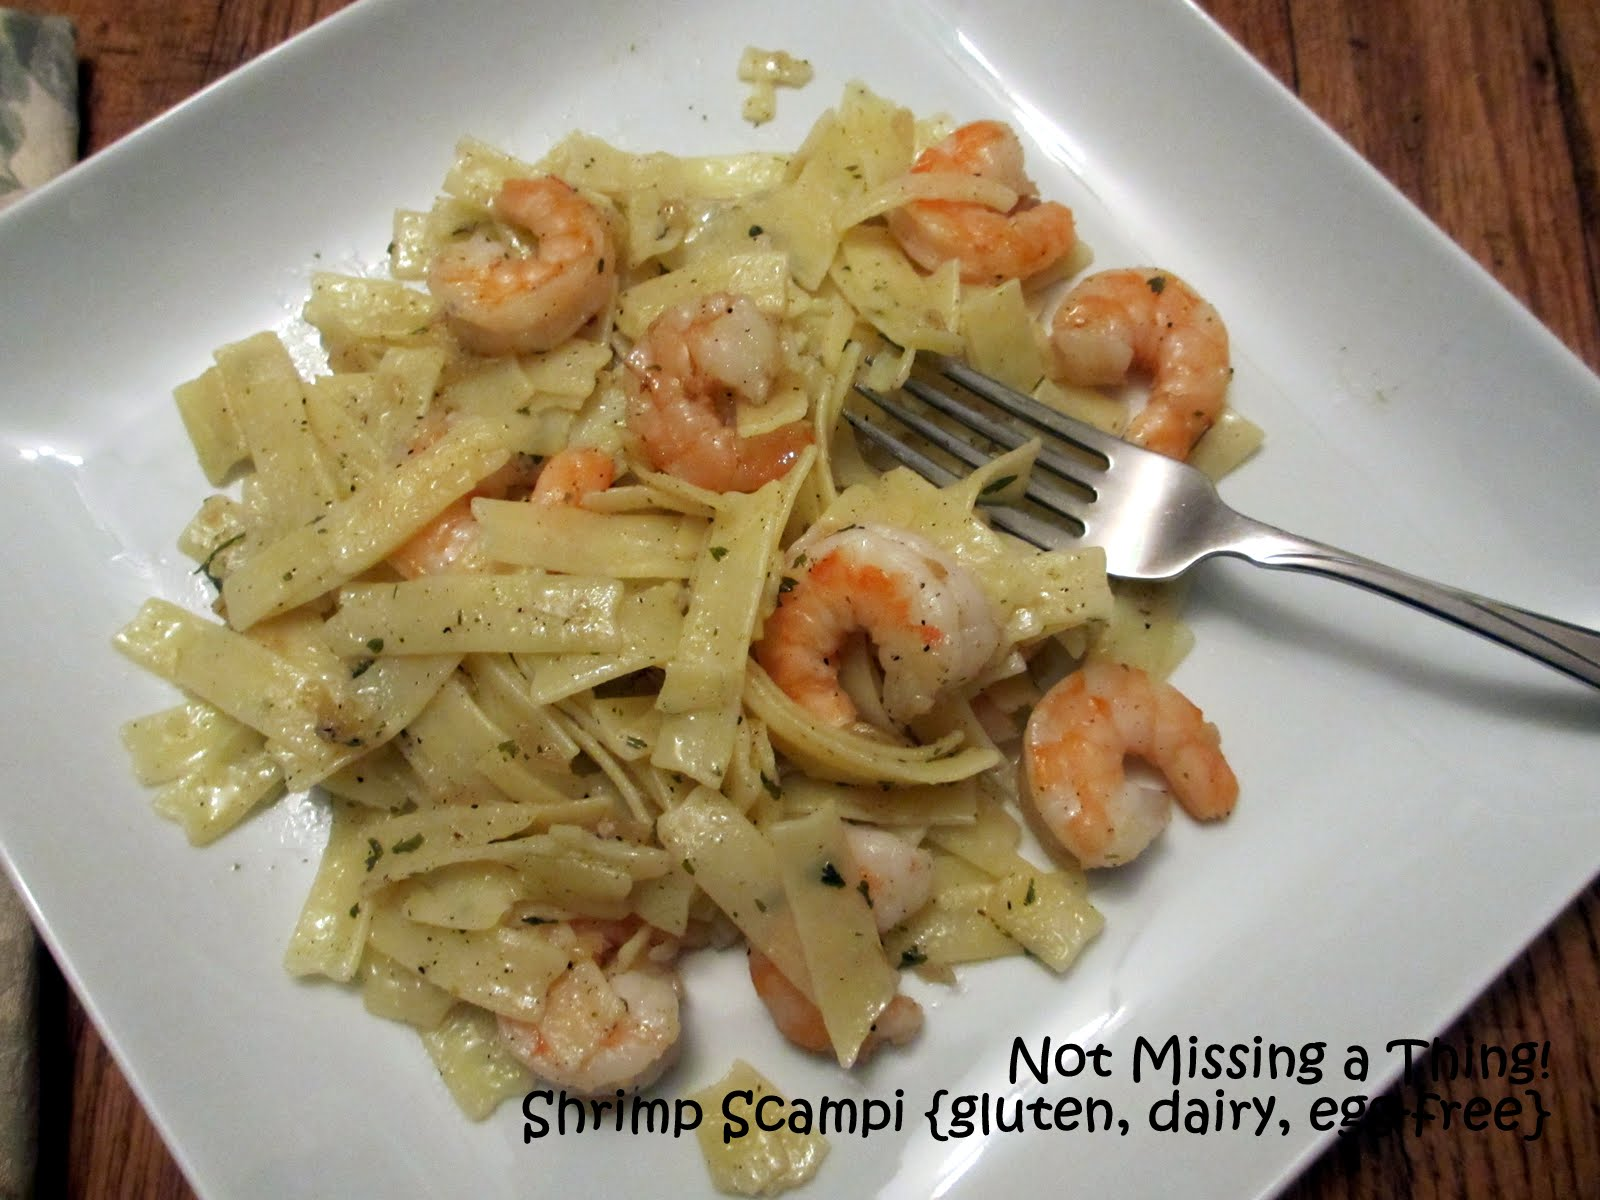 Not Missing a Thing! Allergy Friendly Cooking: Shrimp or Chicken ...